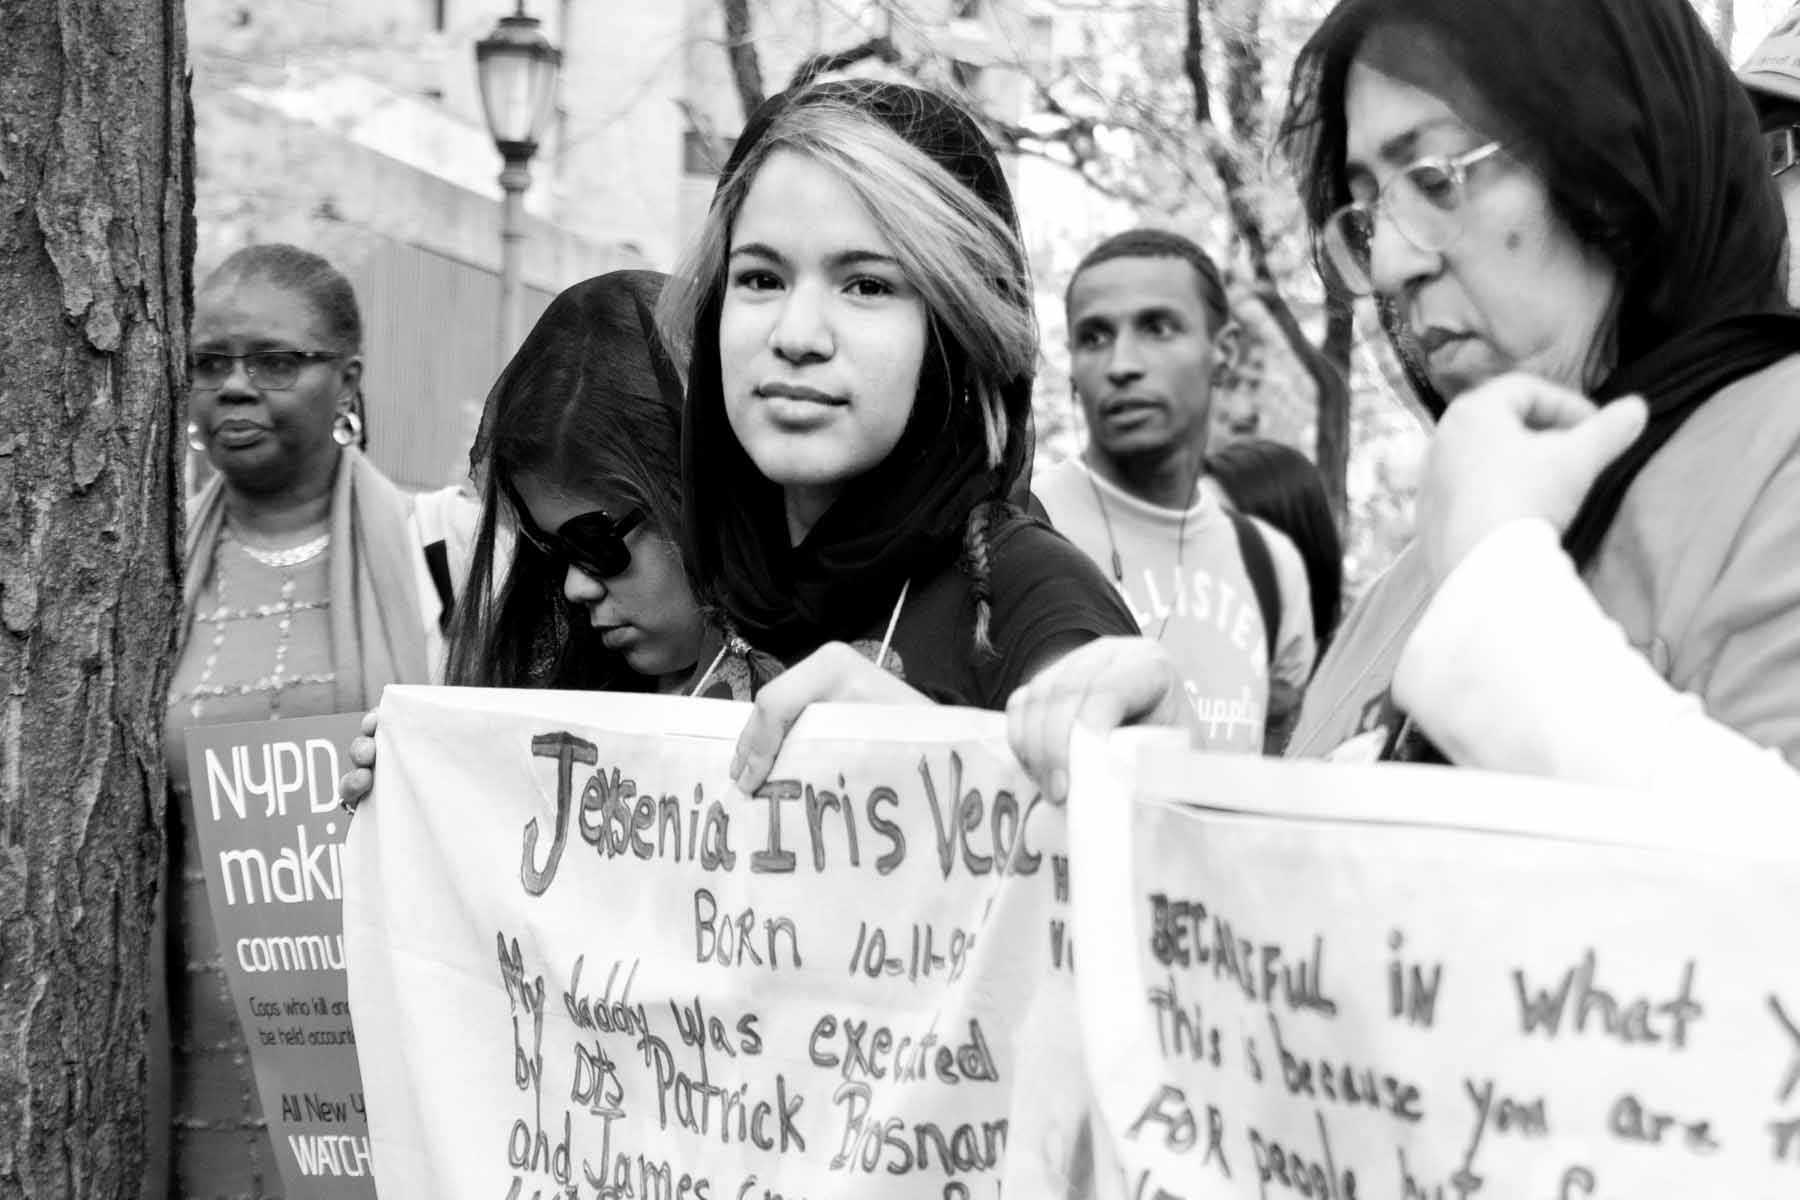 STOLEN LIVES & RESURRECTION : HILTON VEGAS'S DAUGHTERS RESURRECT HIS COURAGE TO DEMAND JUSTICE